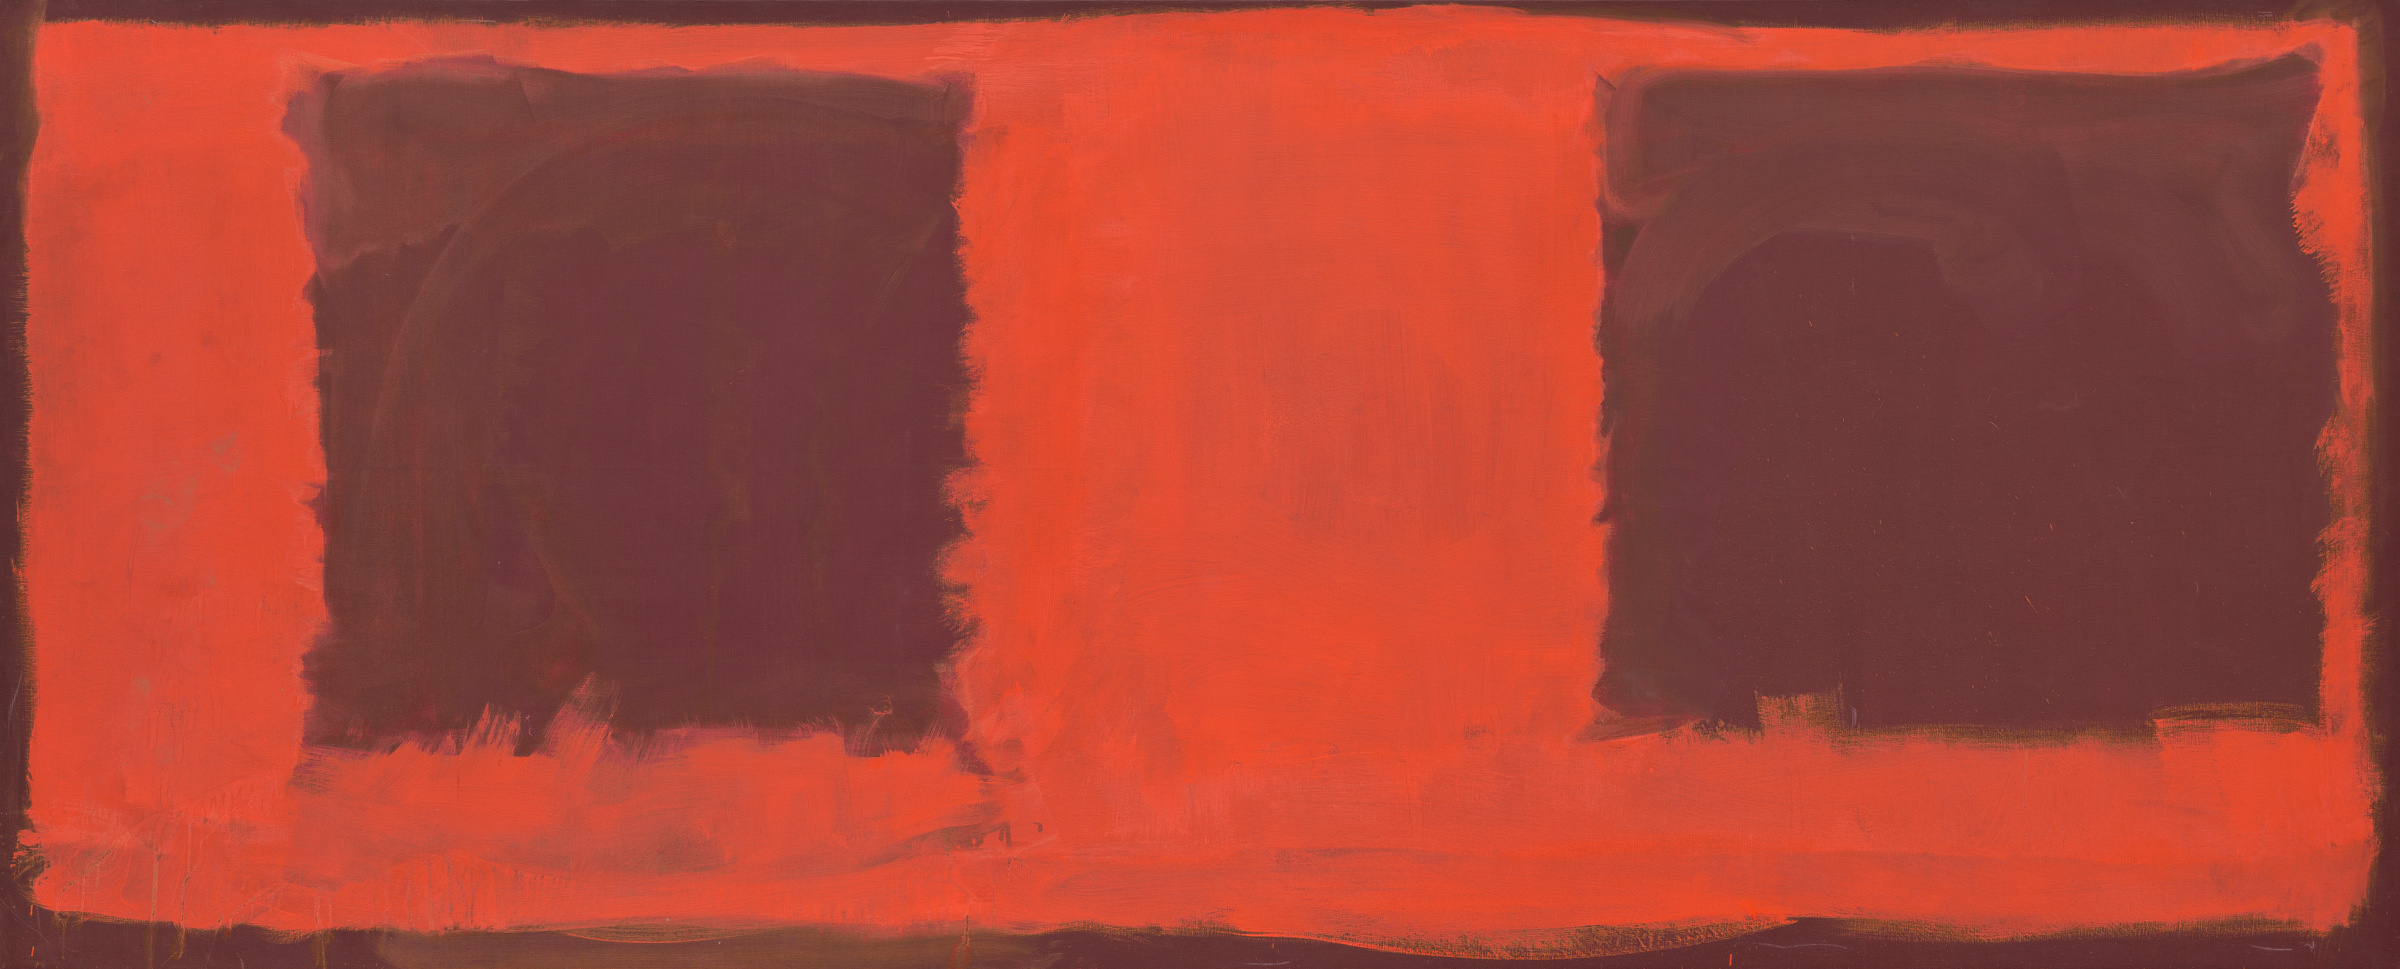 artist Mark Rothko, Untitled (Seagram Mural sketch), 1959, oil and mixed media on canvas, National Gallery of Art, Washington, Gift of The Mark Rothko Foundation, Inc. © 1998 by Kate Rothko Prizel and Christopher Rothko courtesy Museum  of Fine Arts Houston